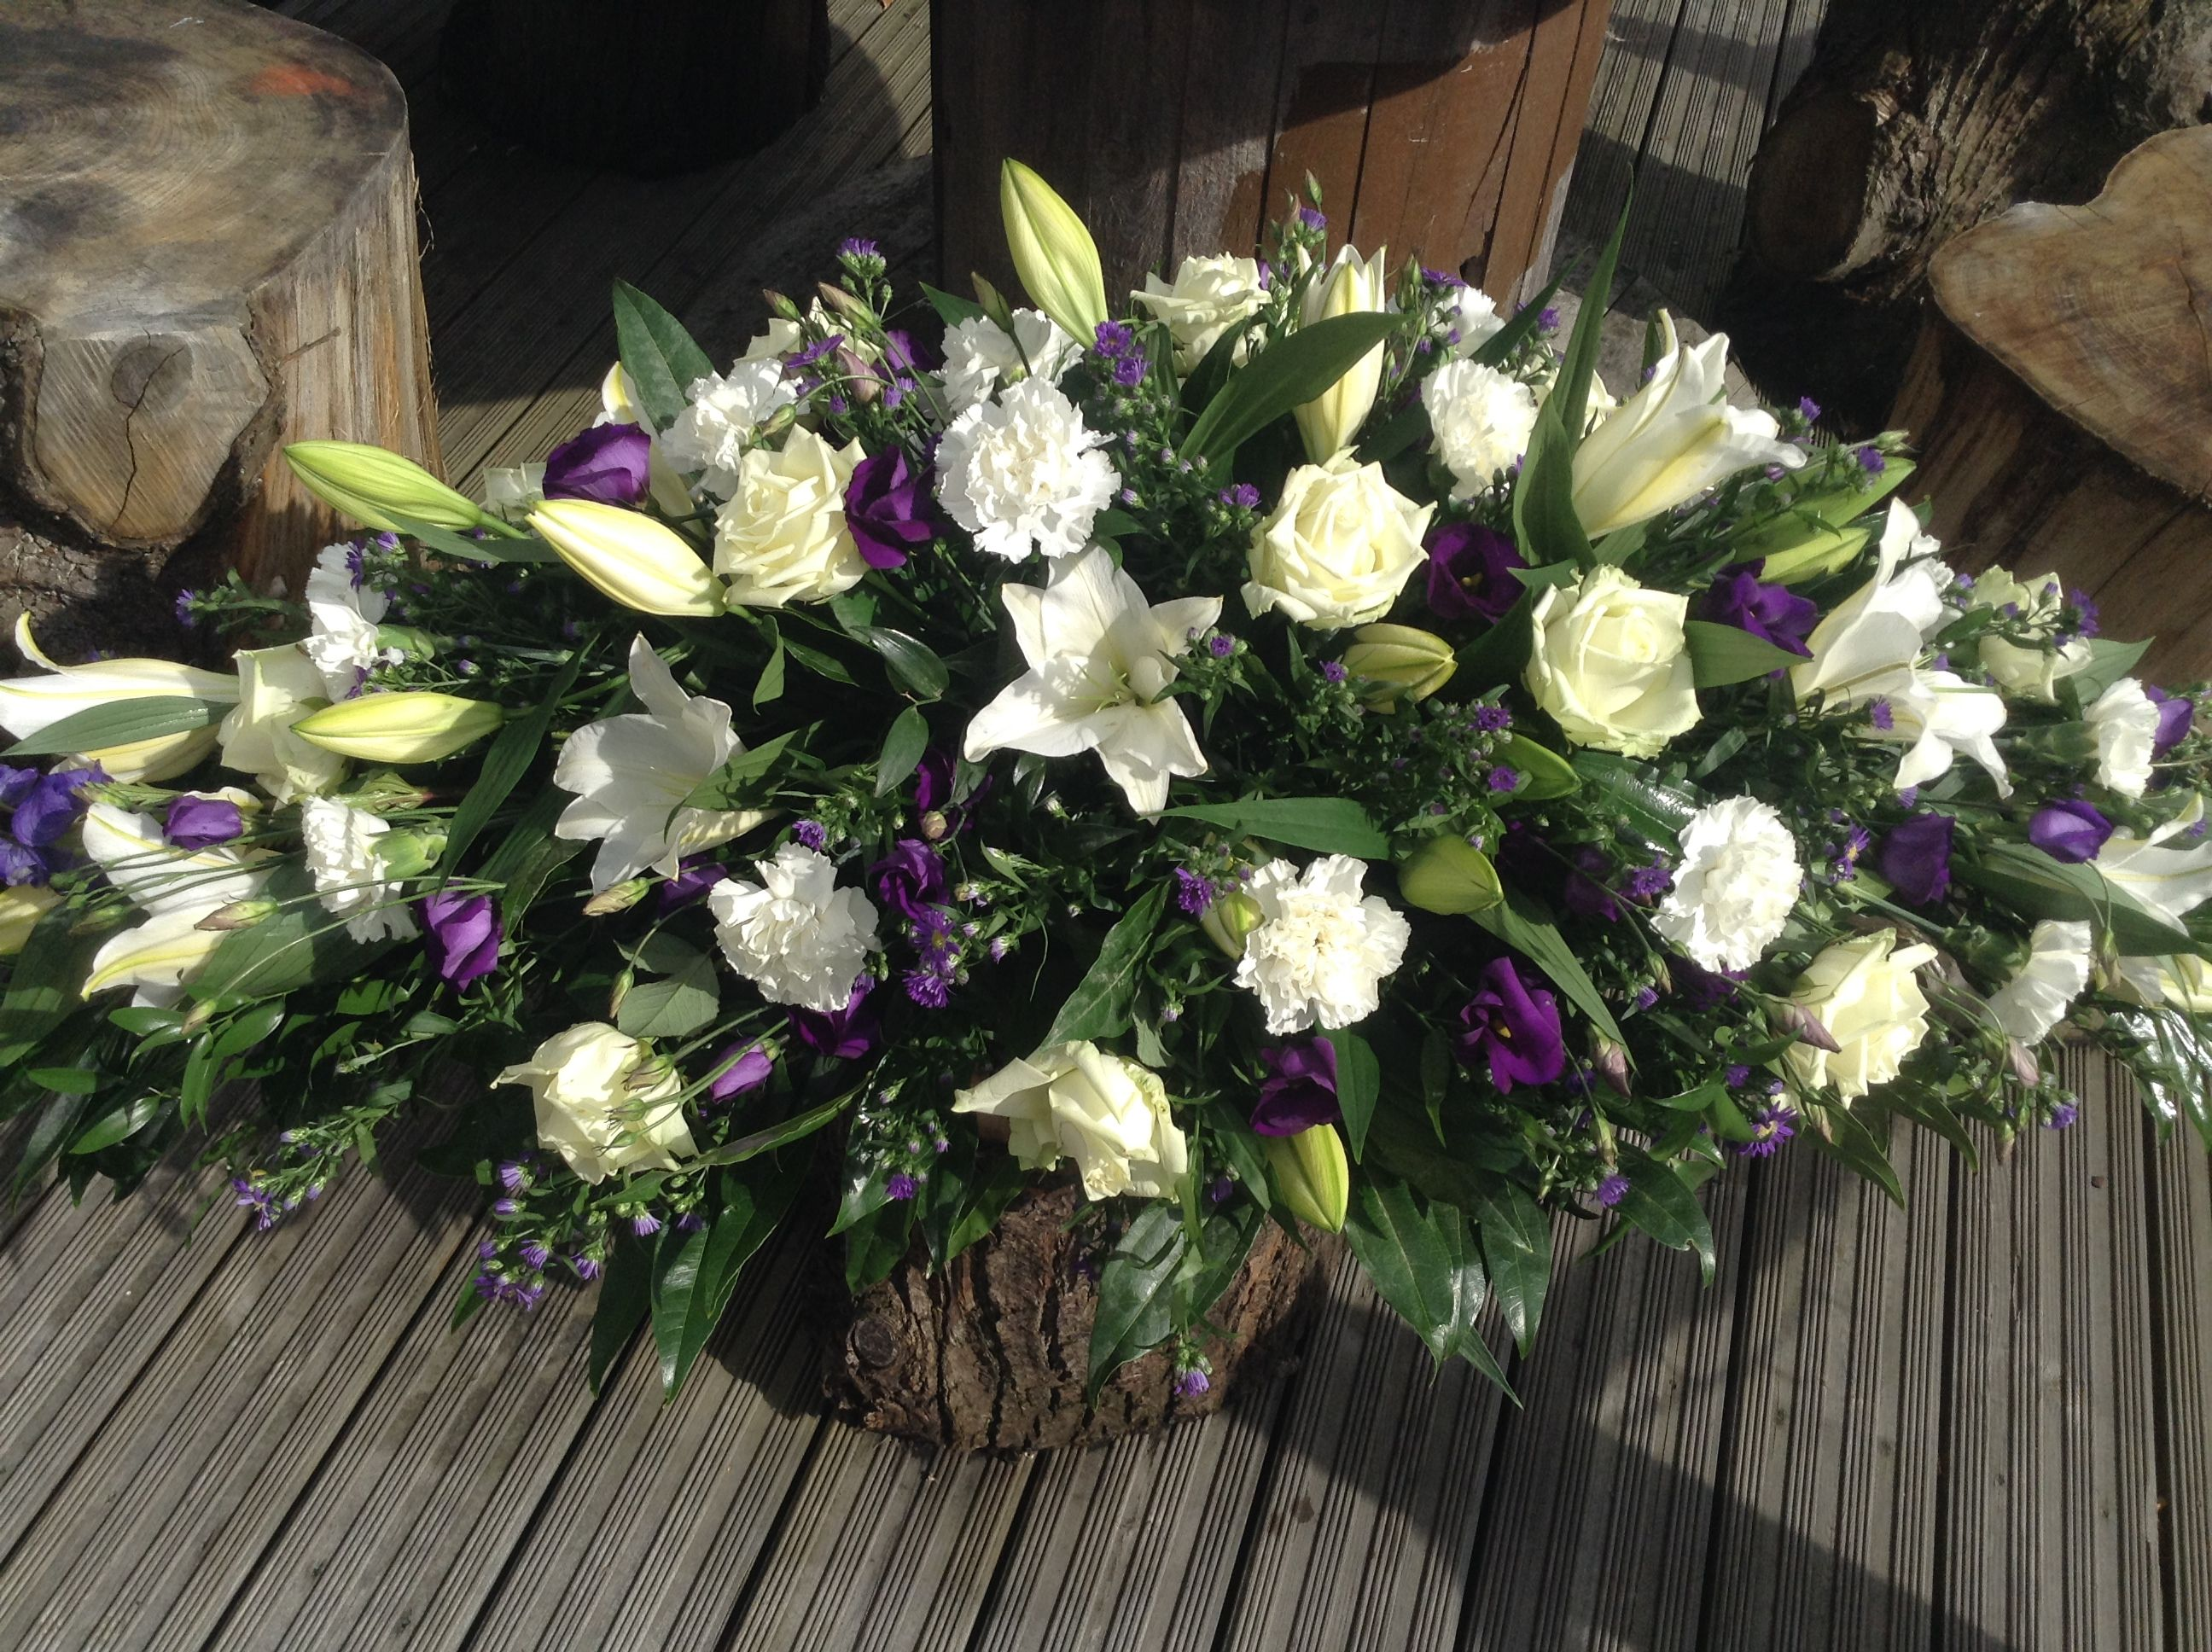 Funeral flowers white lily coffin spray funeral flowers purple funeral flowers white lily coffin spray funeral flowers purple and white coffin spray casket spray thefloralartstudio izmirmasajfo